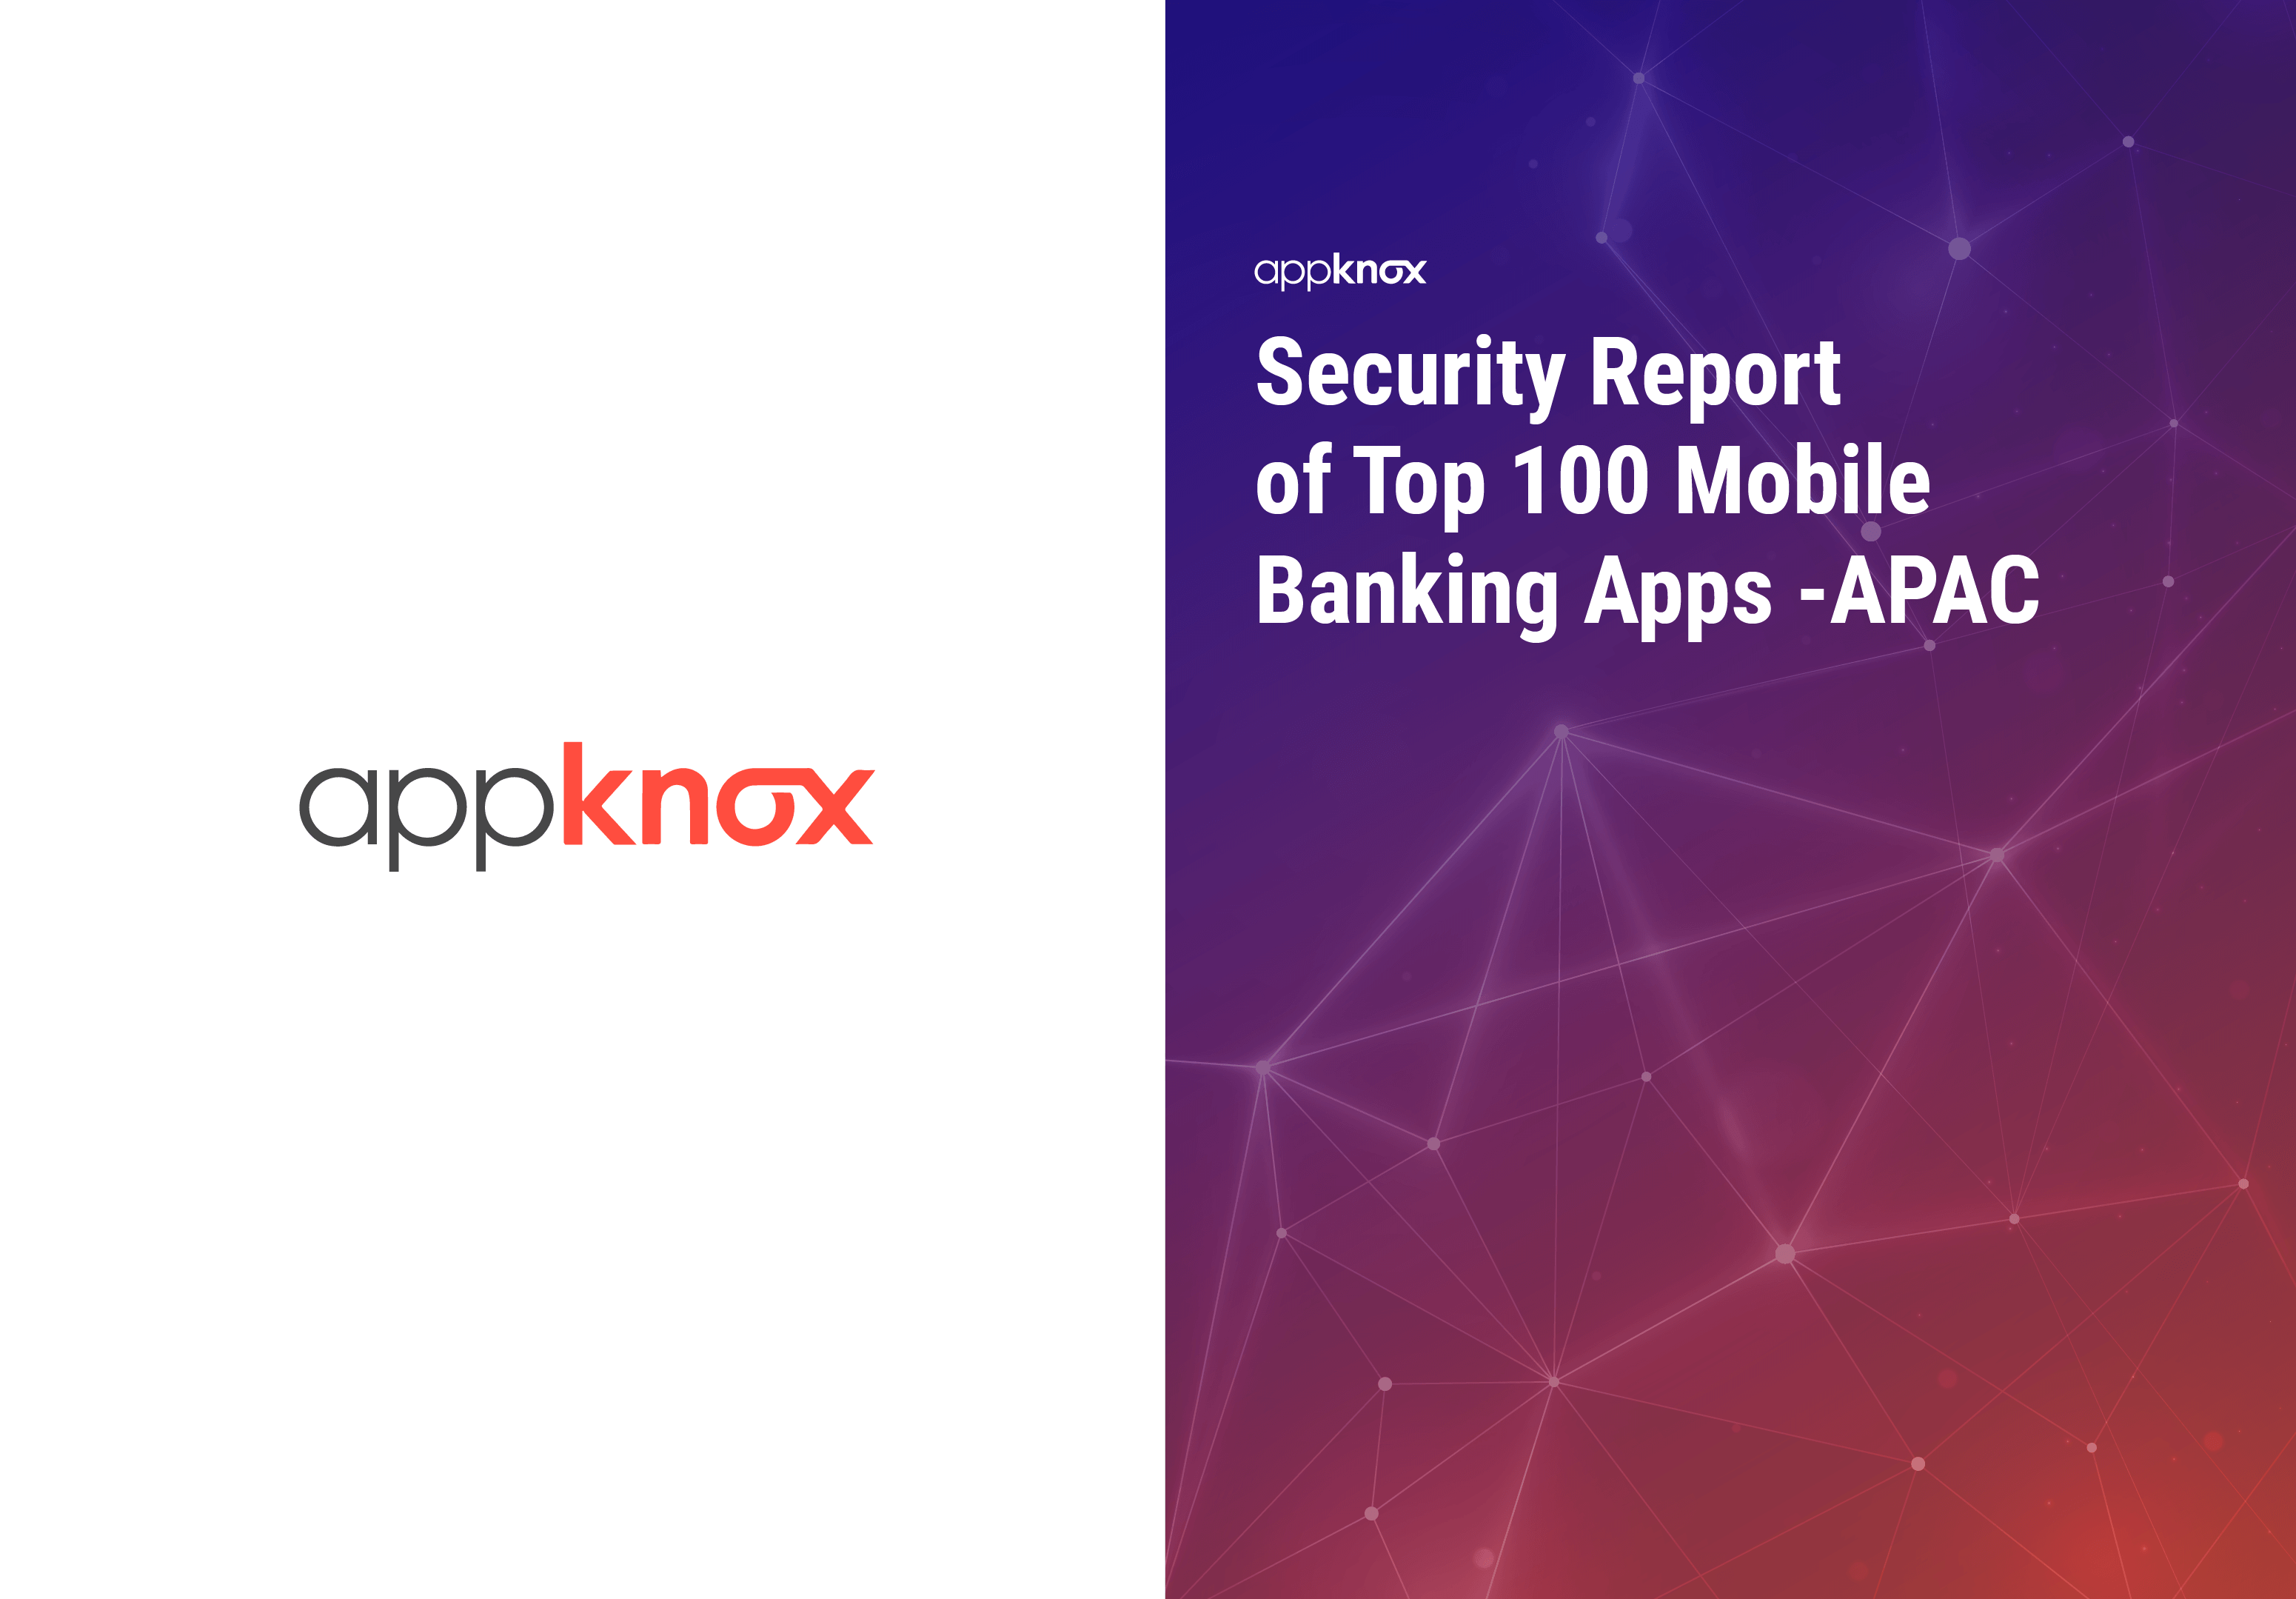 REPORTS - Security Report of Top 100 Mobile Banking Apps -APAC